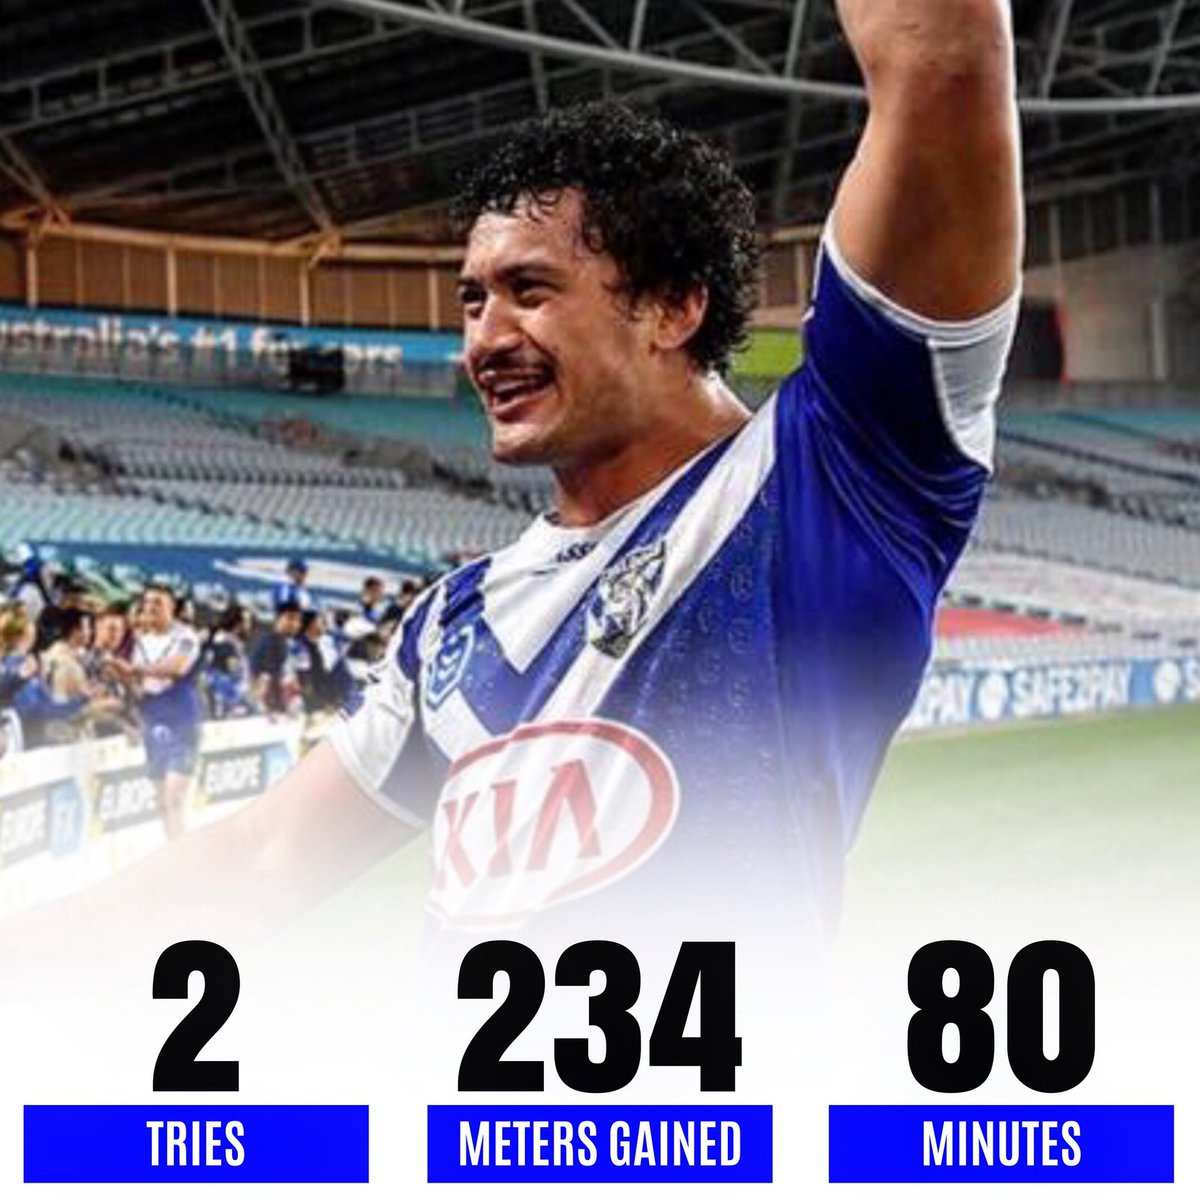 COREY HARAWIRA-NAERA STATS A great performance by Corey last night in our win over the Rabbitohs, with scoring 2 tries in the full 80 minutes.🏃♂️ 234 Meters Gained🏈 2 Tries⏰ 80 Minutes#bulldogsnation1935